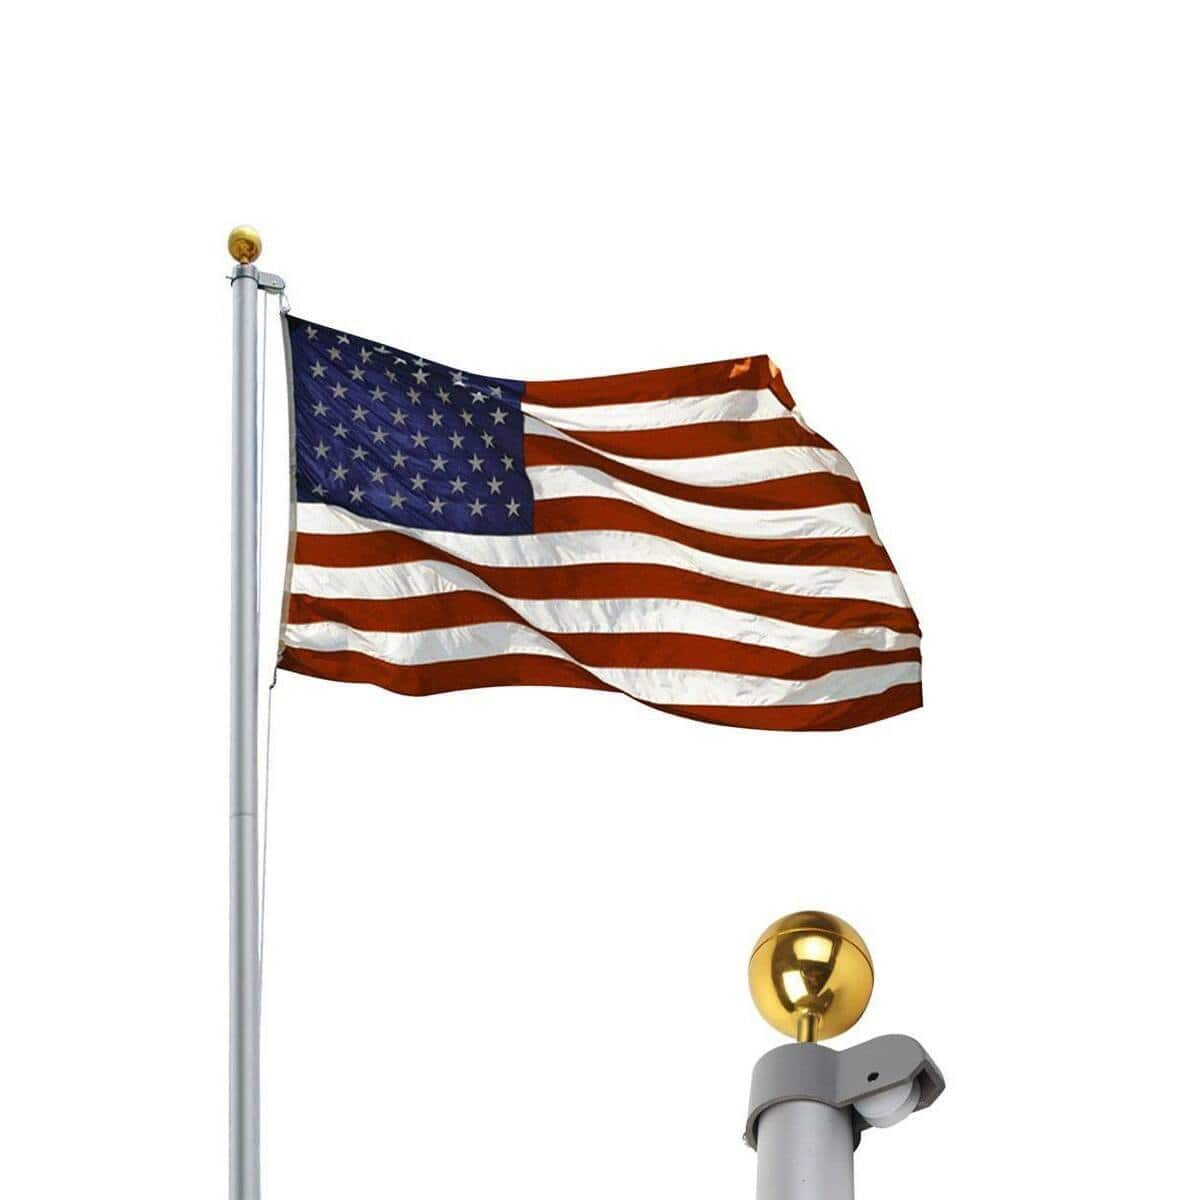 20 ft Aluminum Sectional Flagpole Kit w/ Halyard Pole and American Flag $48.95 + FS